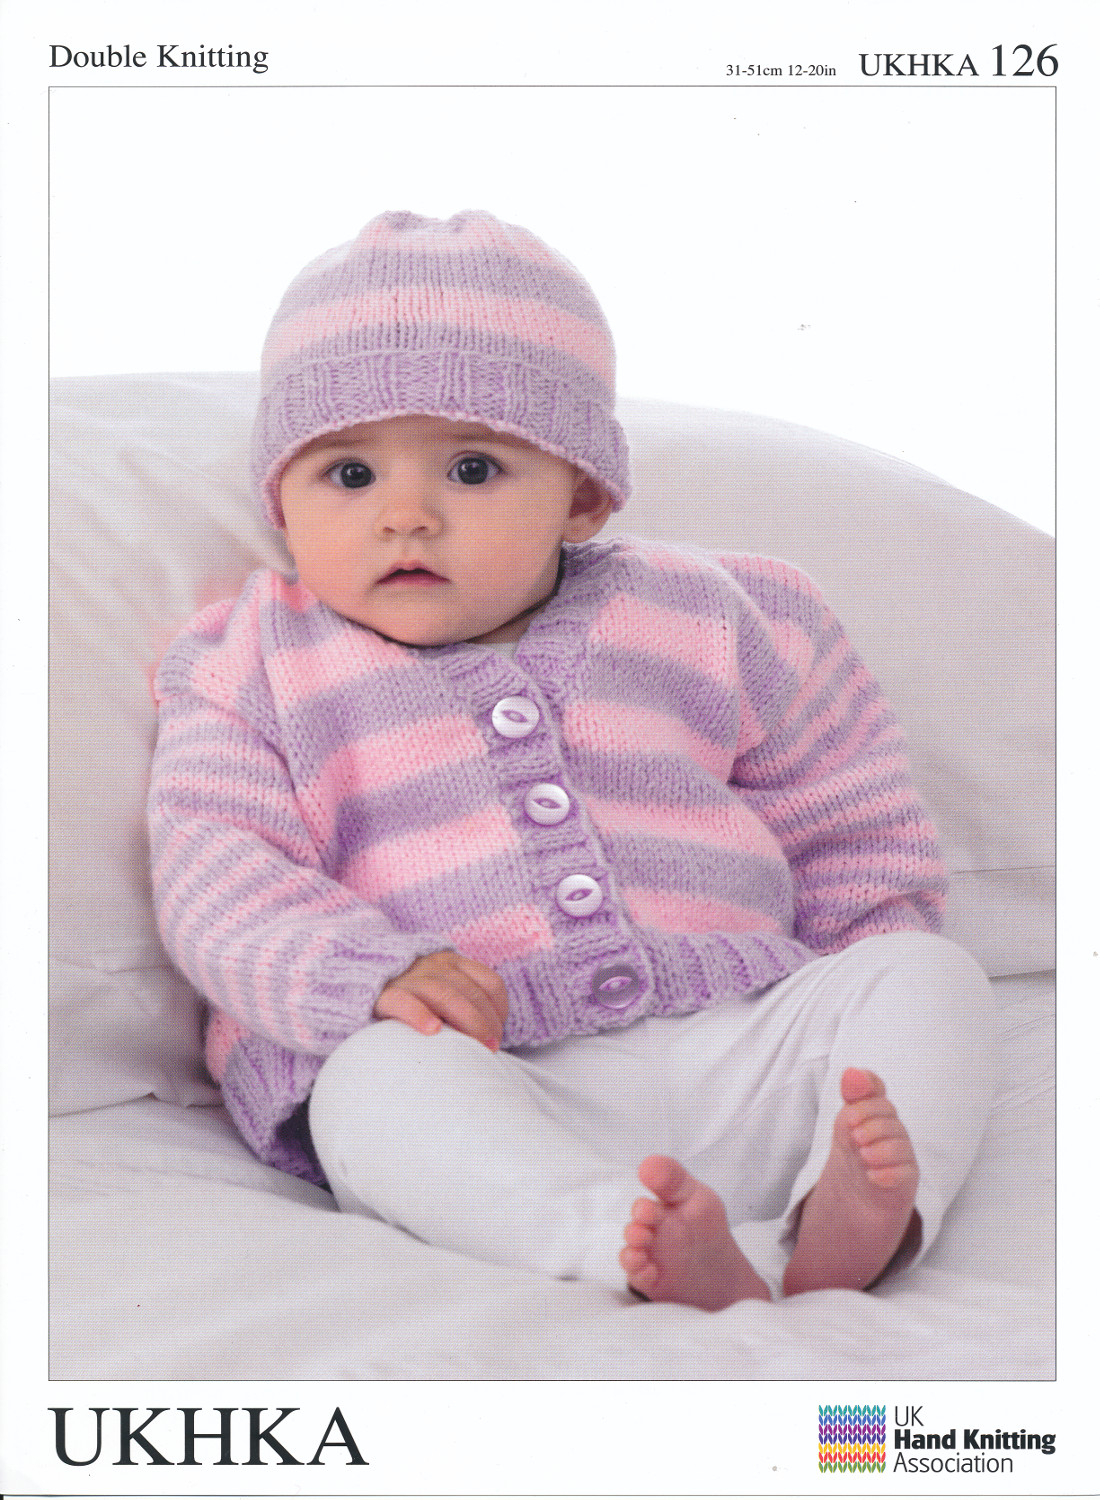 Free Knitting Patterns For Hats Uk Details About Double Knitting Dk Pattern Ba Long Sleeved Striped Cardigan Hat Ukhka 126